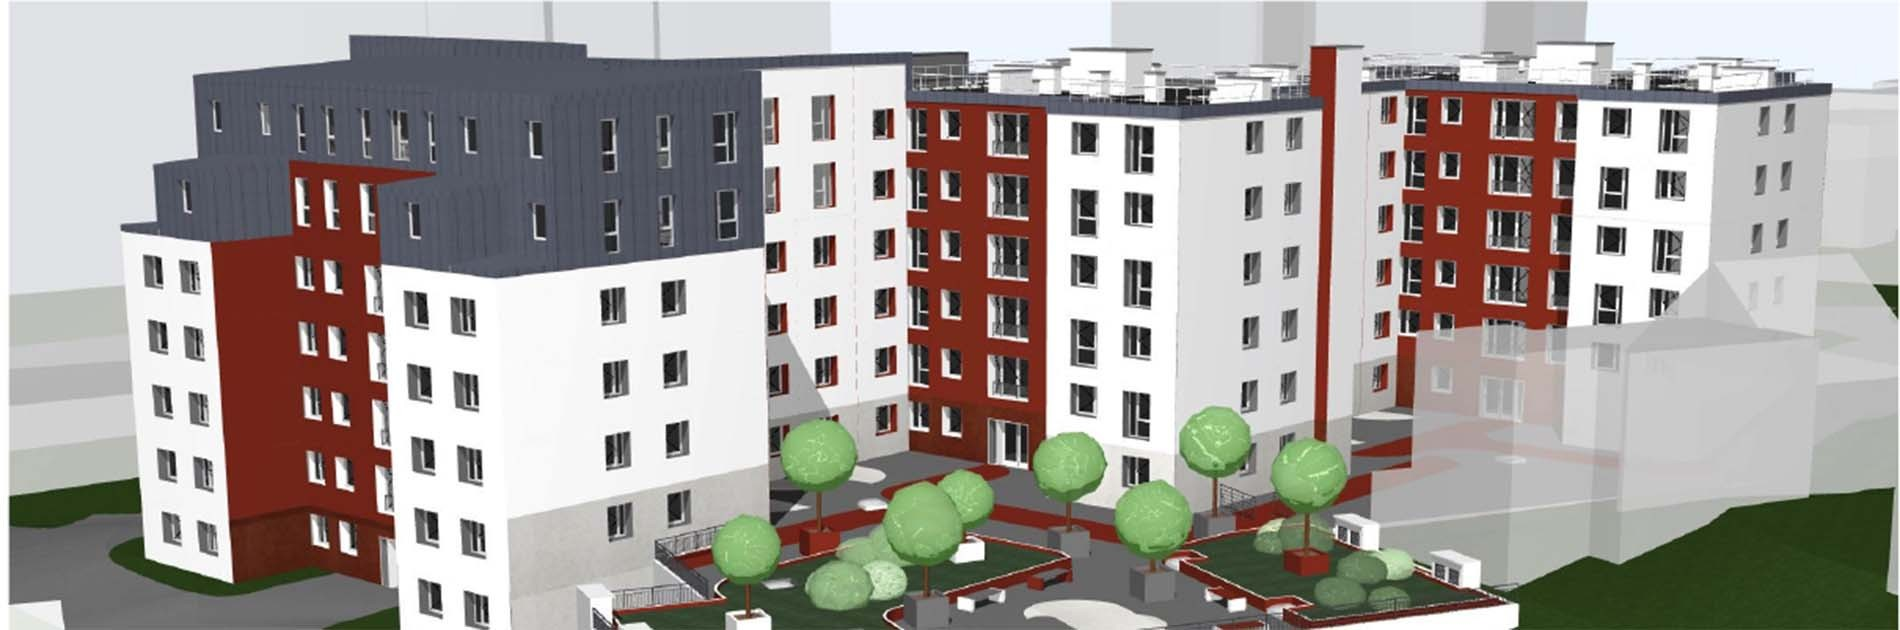 VALOPHIS RETIENT TECHNIWOOD POUR LA SURELEVATION DE 12 LOGEMENTS